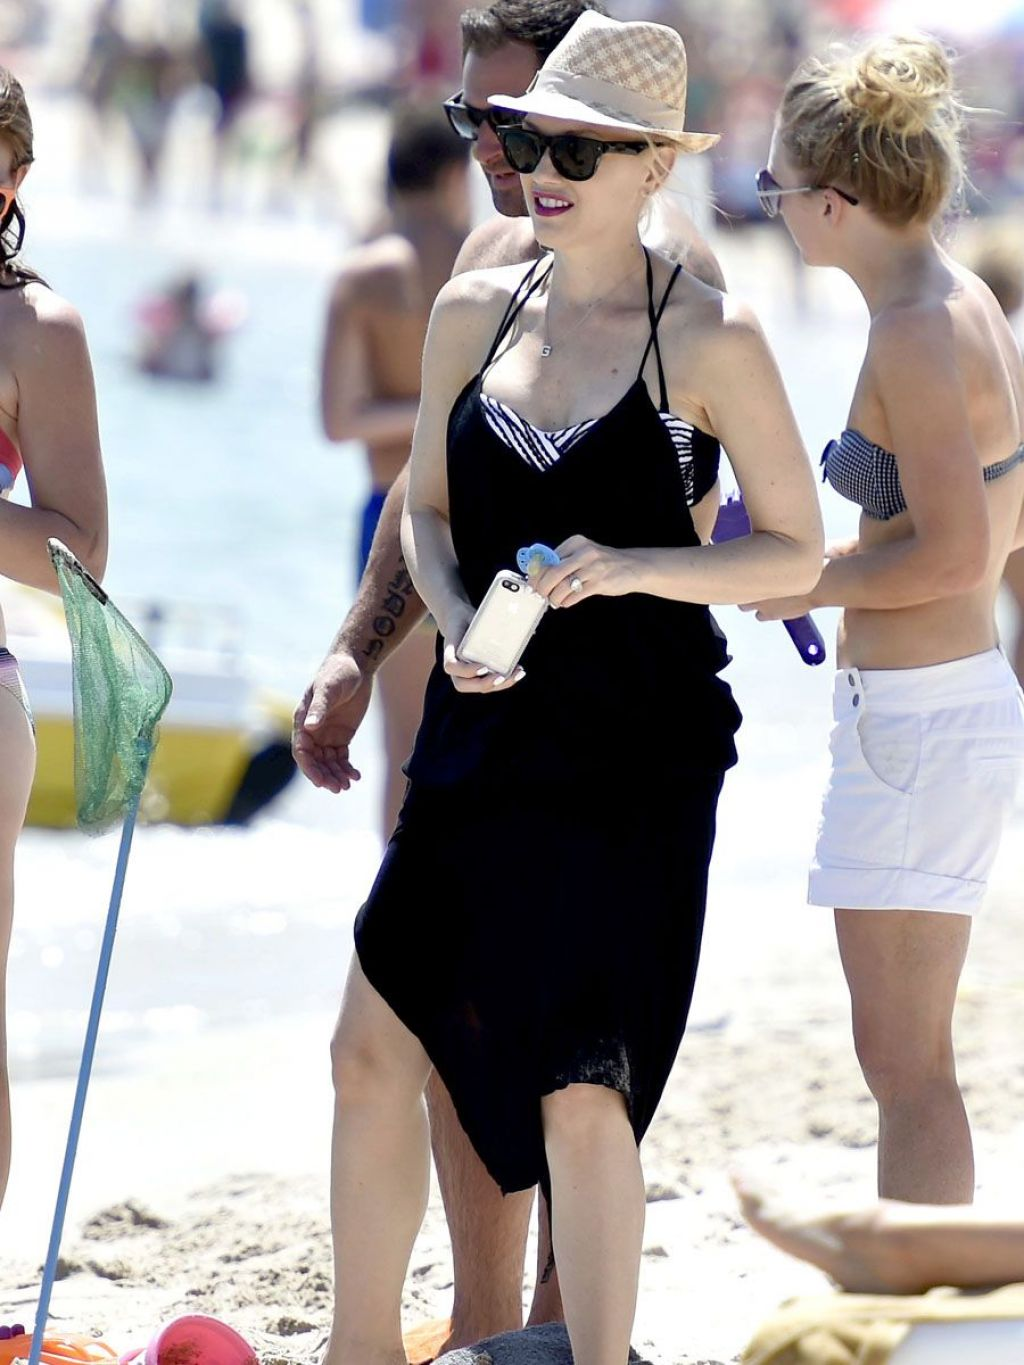 Gwen Stefani on Vacation in Italy - August 2014